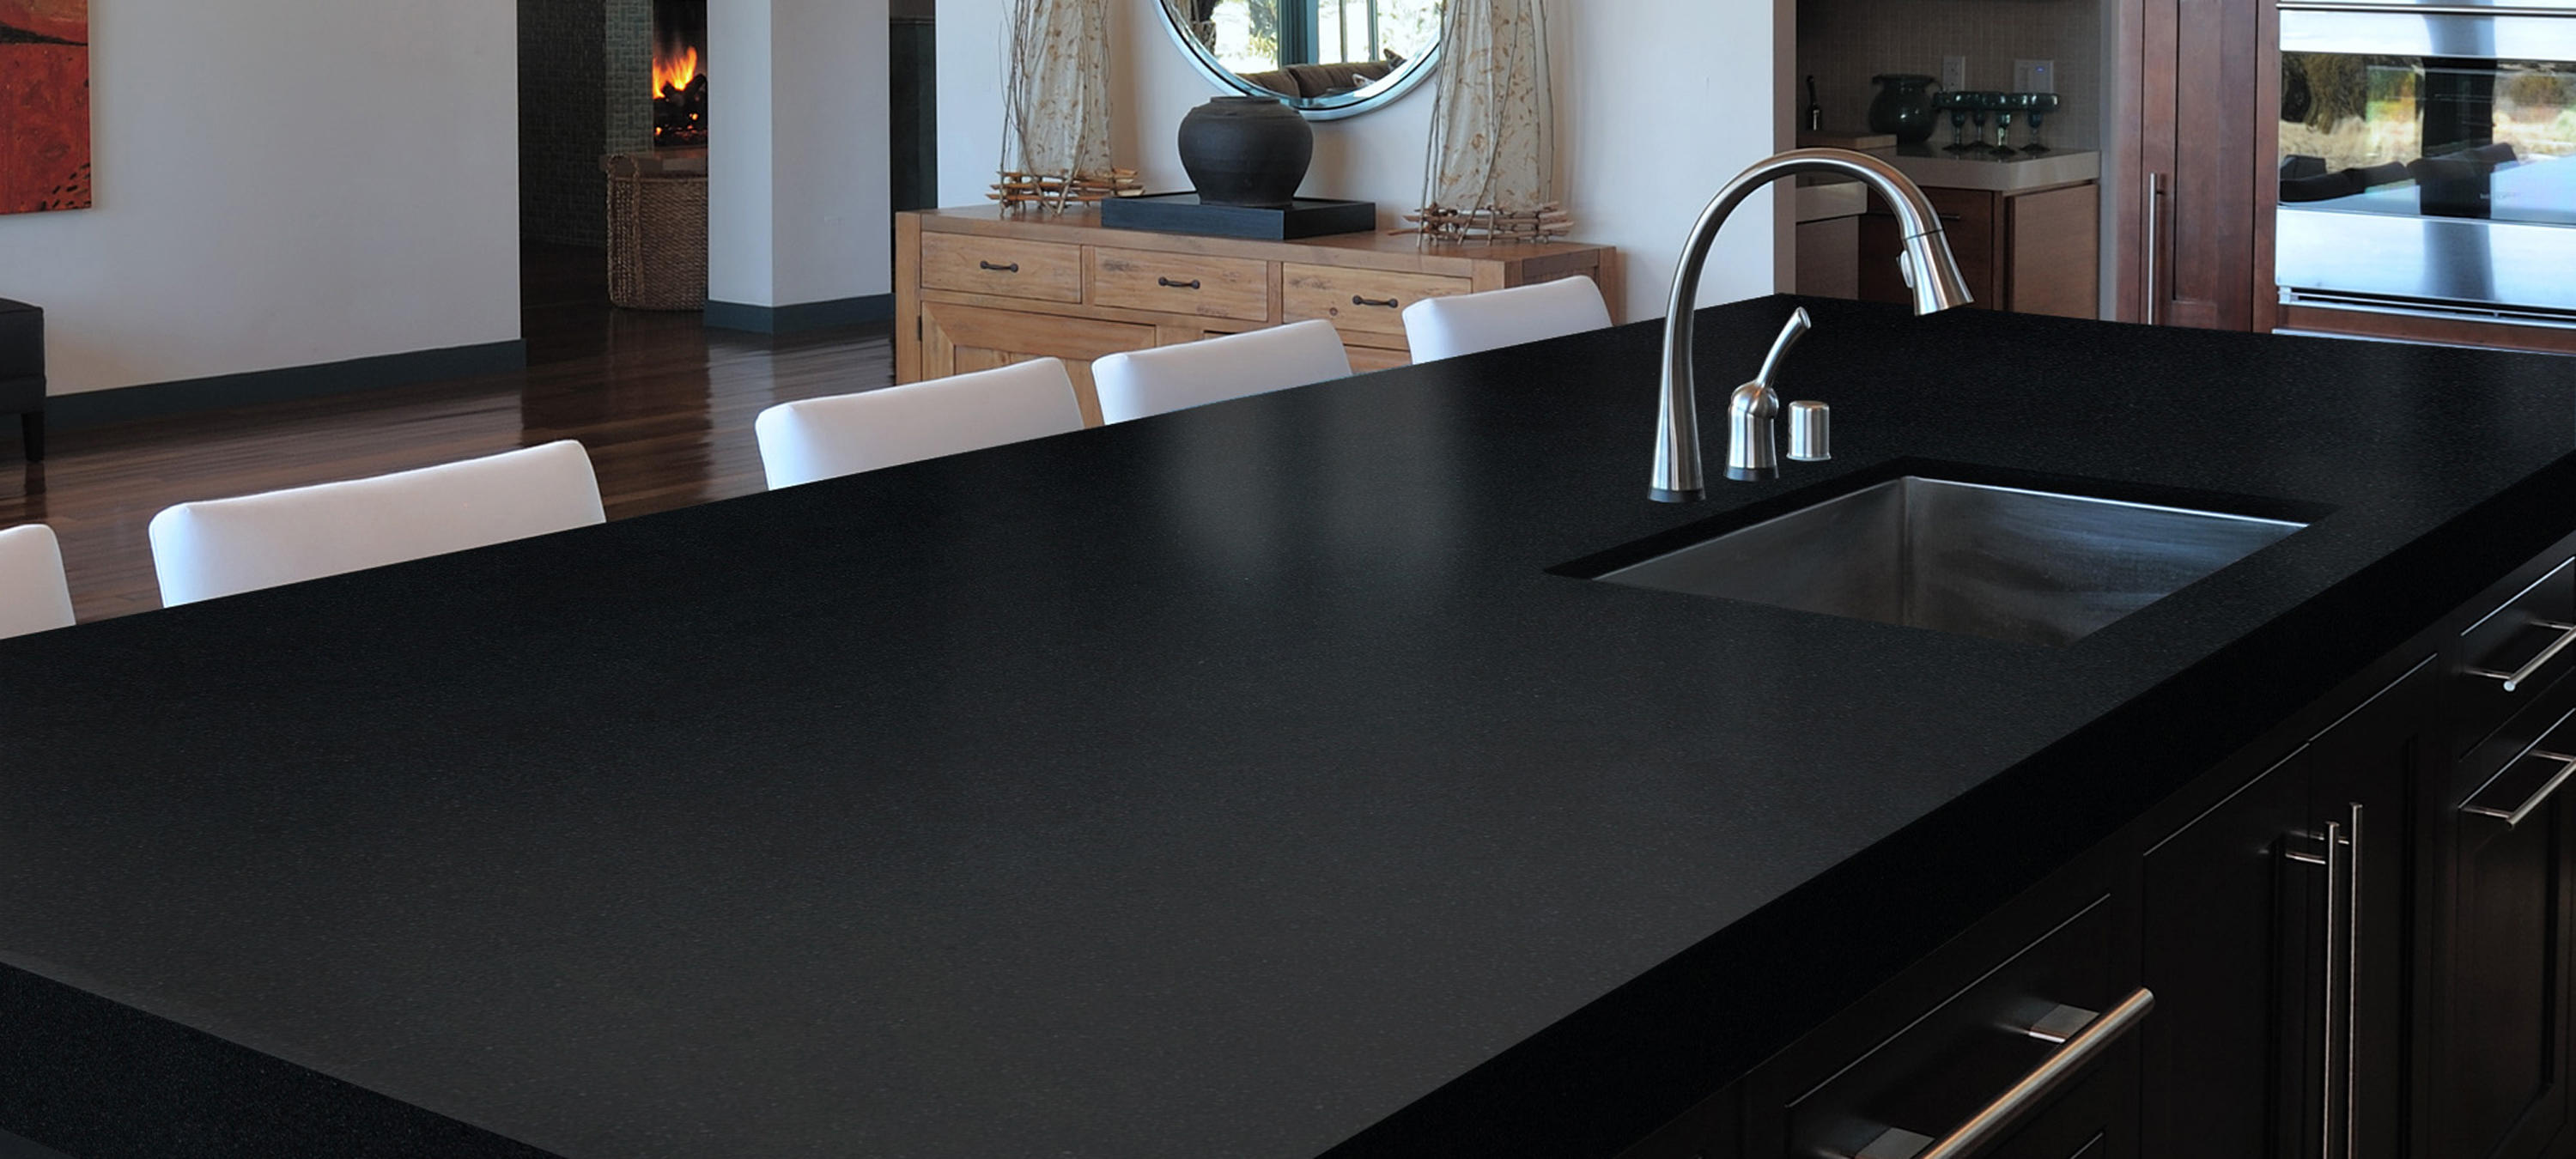 Superior Silestone Iconic Black By Cosentino · Silestone Iconic Black By Cosentino  ...